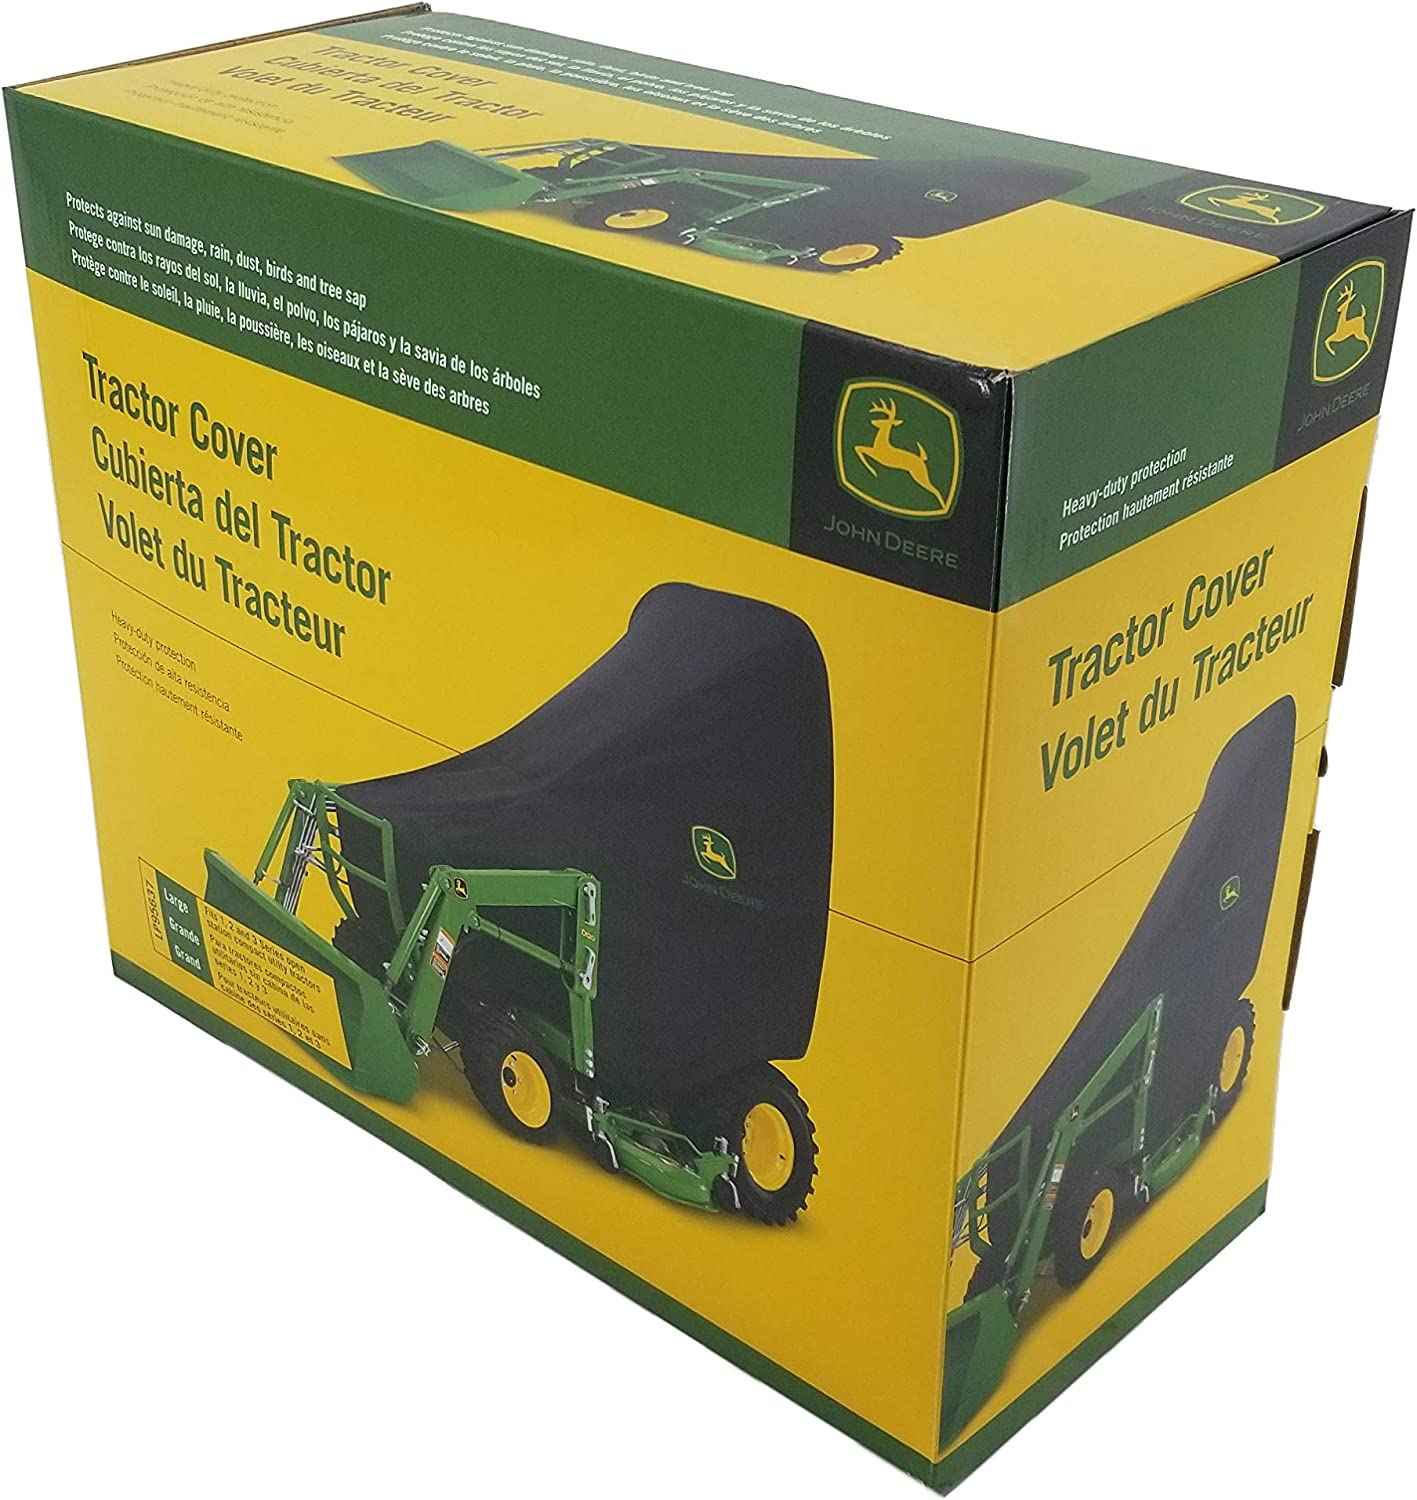 Size JOHN DEERE Compact Utility Tractor Cover Large